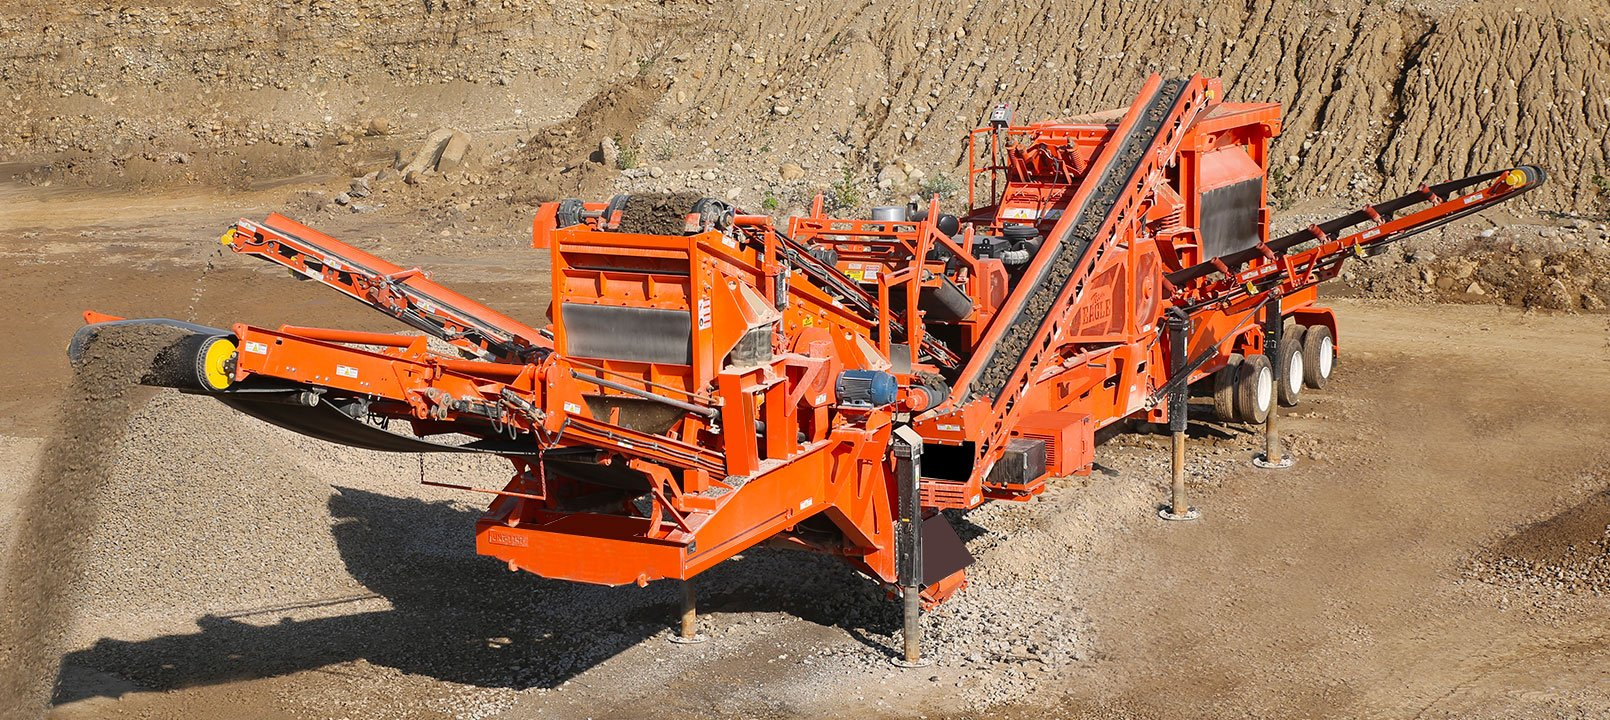 Everything You Need to Know About the RapiDeploy Portable Crushing Plant